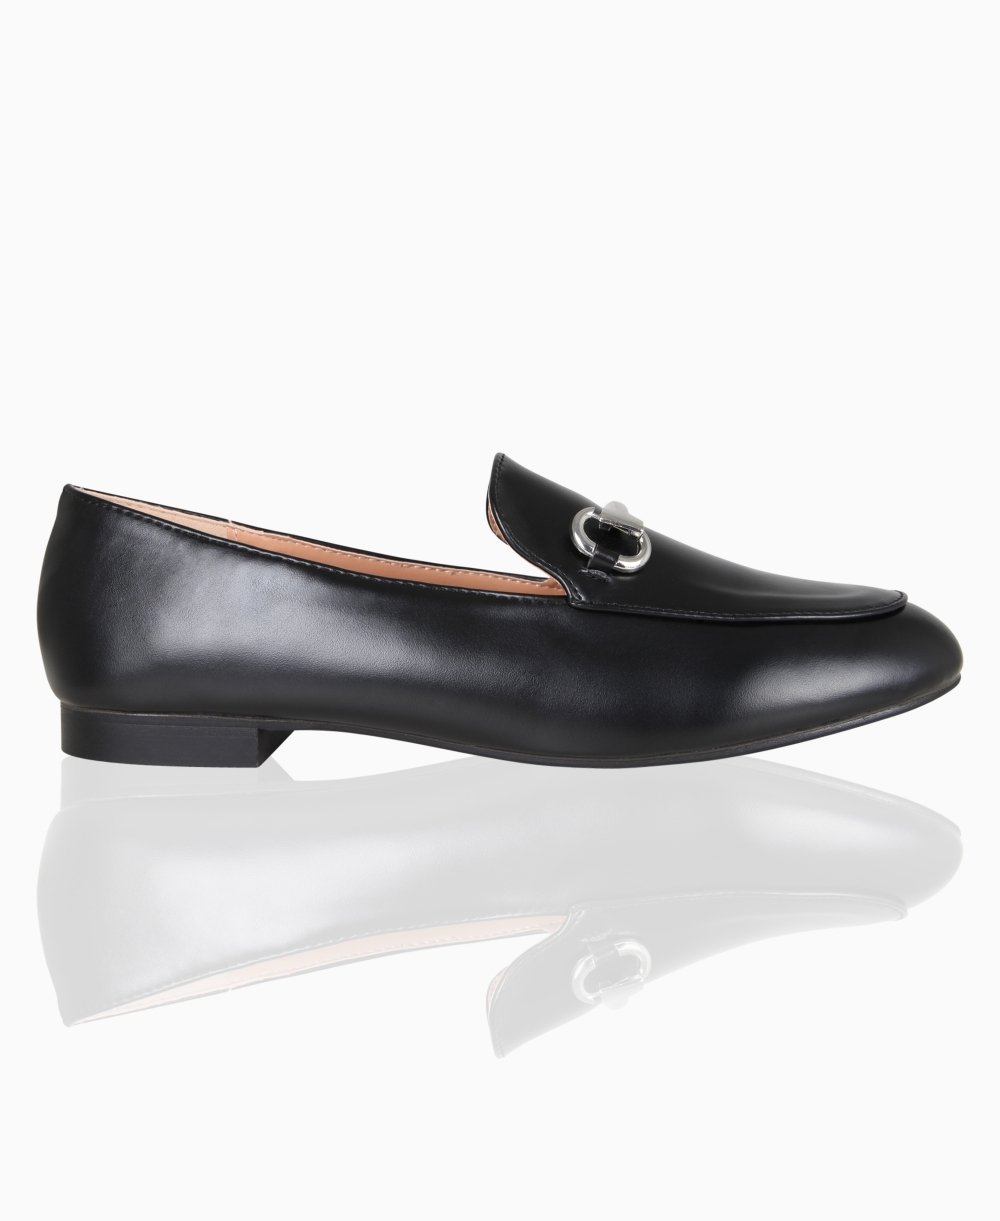 Loafers   Gold Buckle Low Heel Loafers